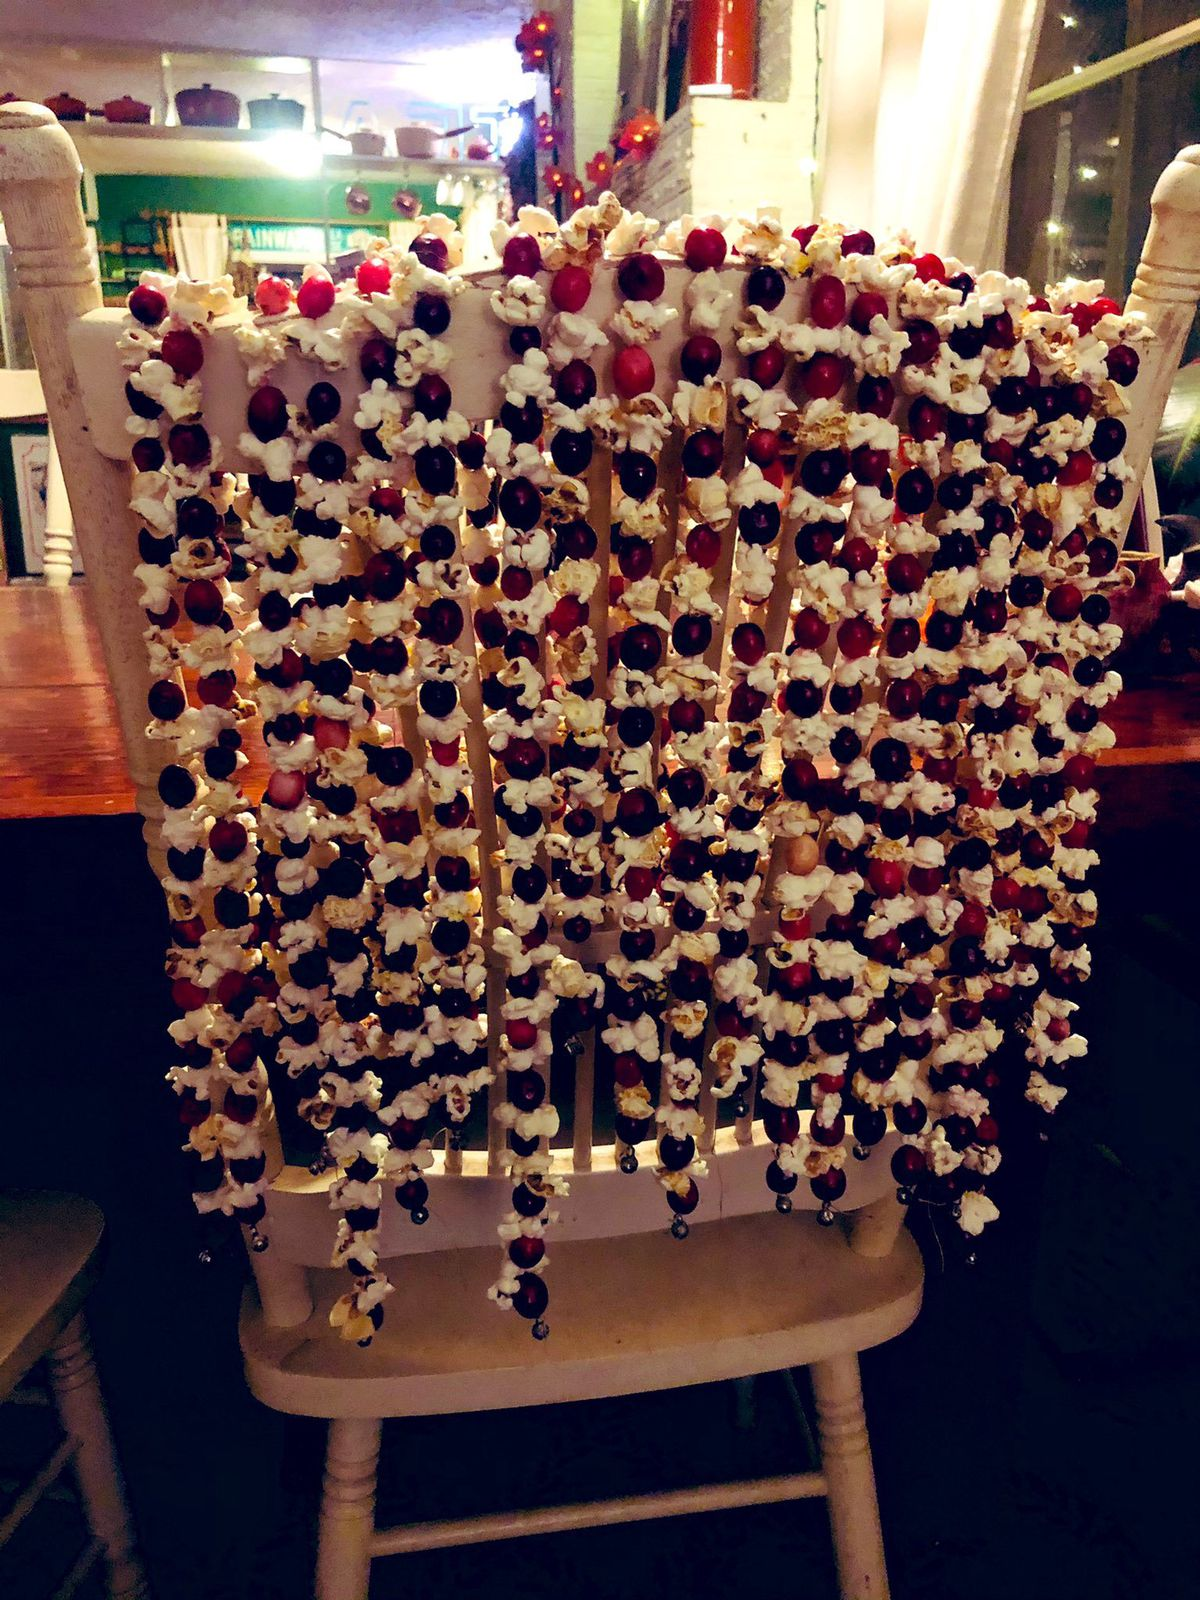 Garlands made of popcorn and cranberries, laid over a chair back.